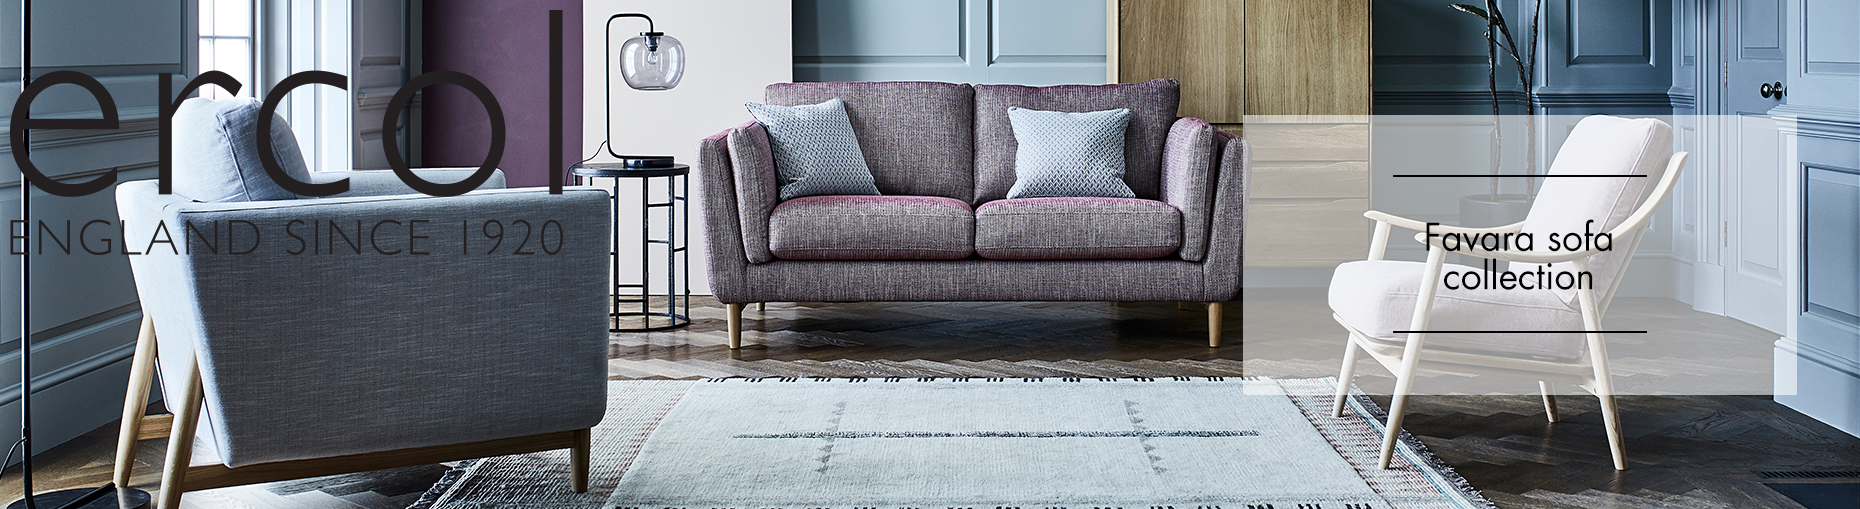 Favara sofa collection by ercol at Forrest Furnishing